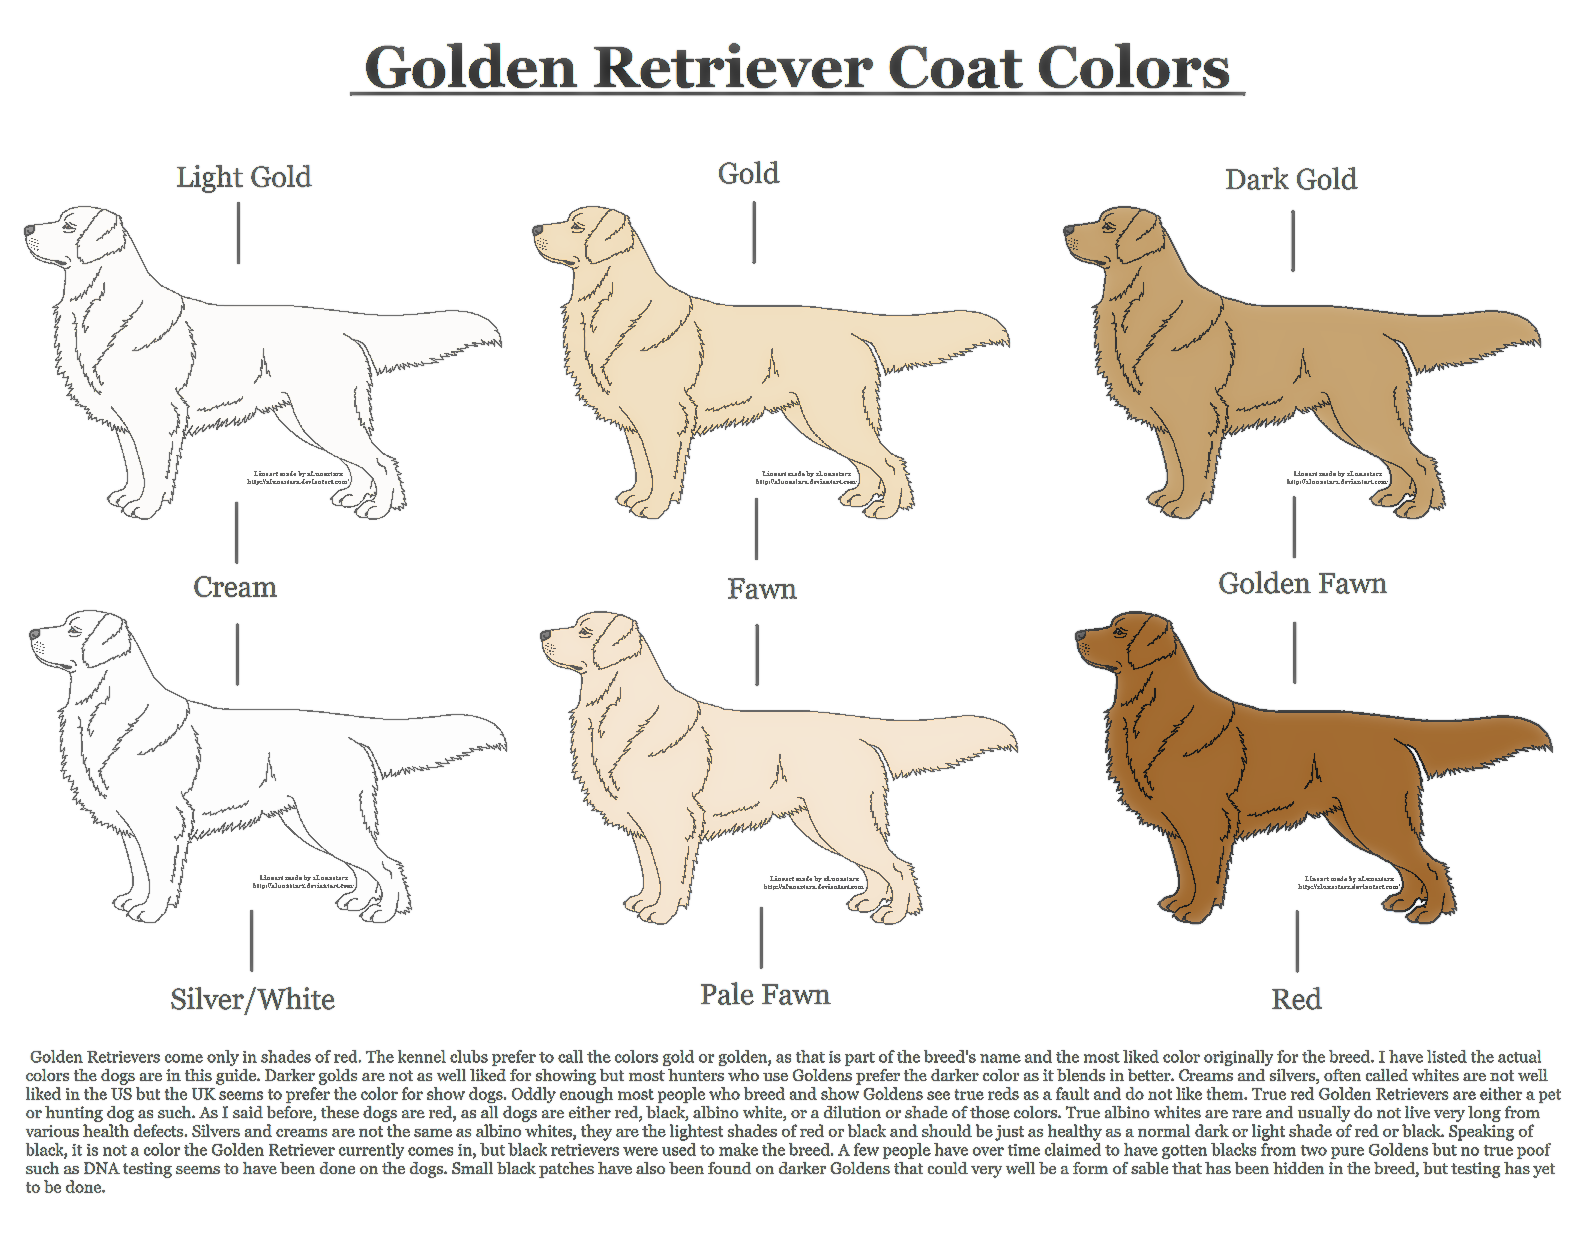 Golden Retriever Coat Colors by xLunastarx on DeviantArt